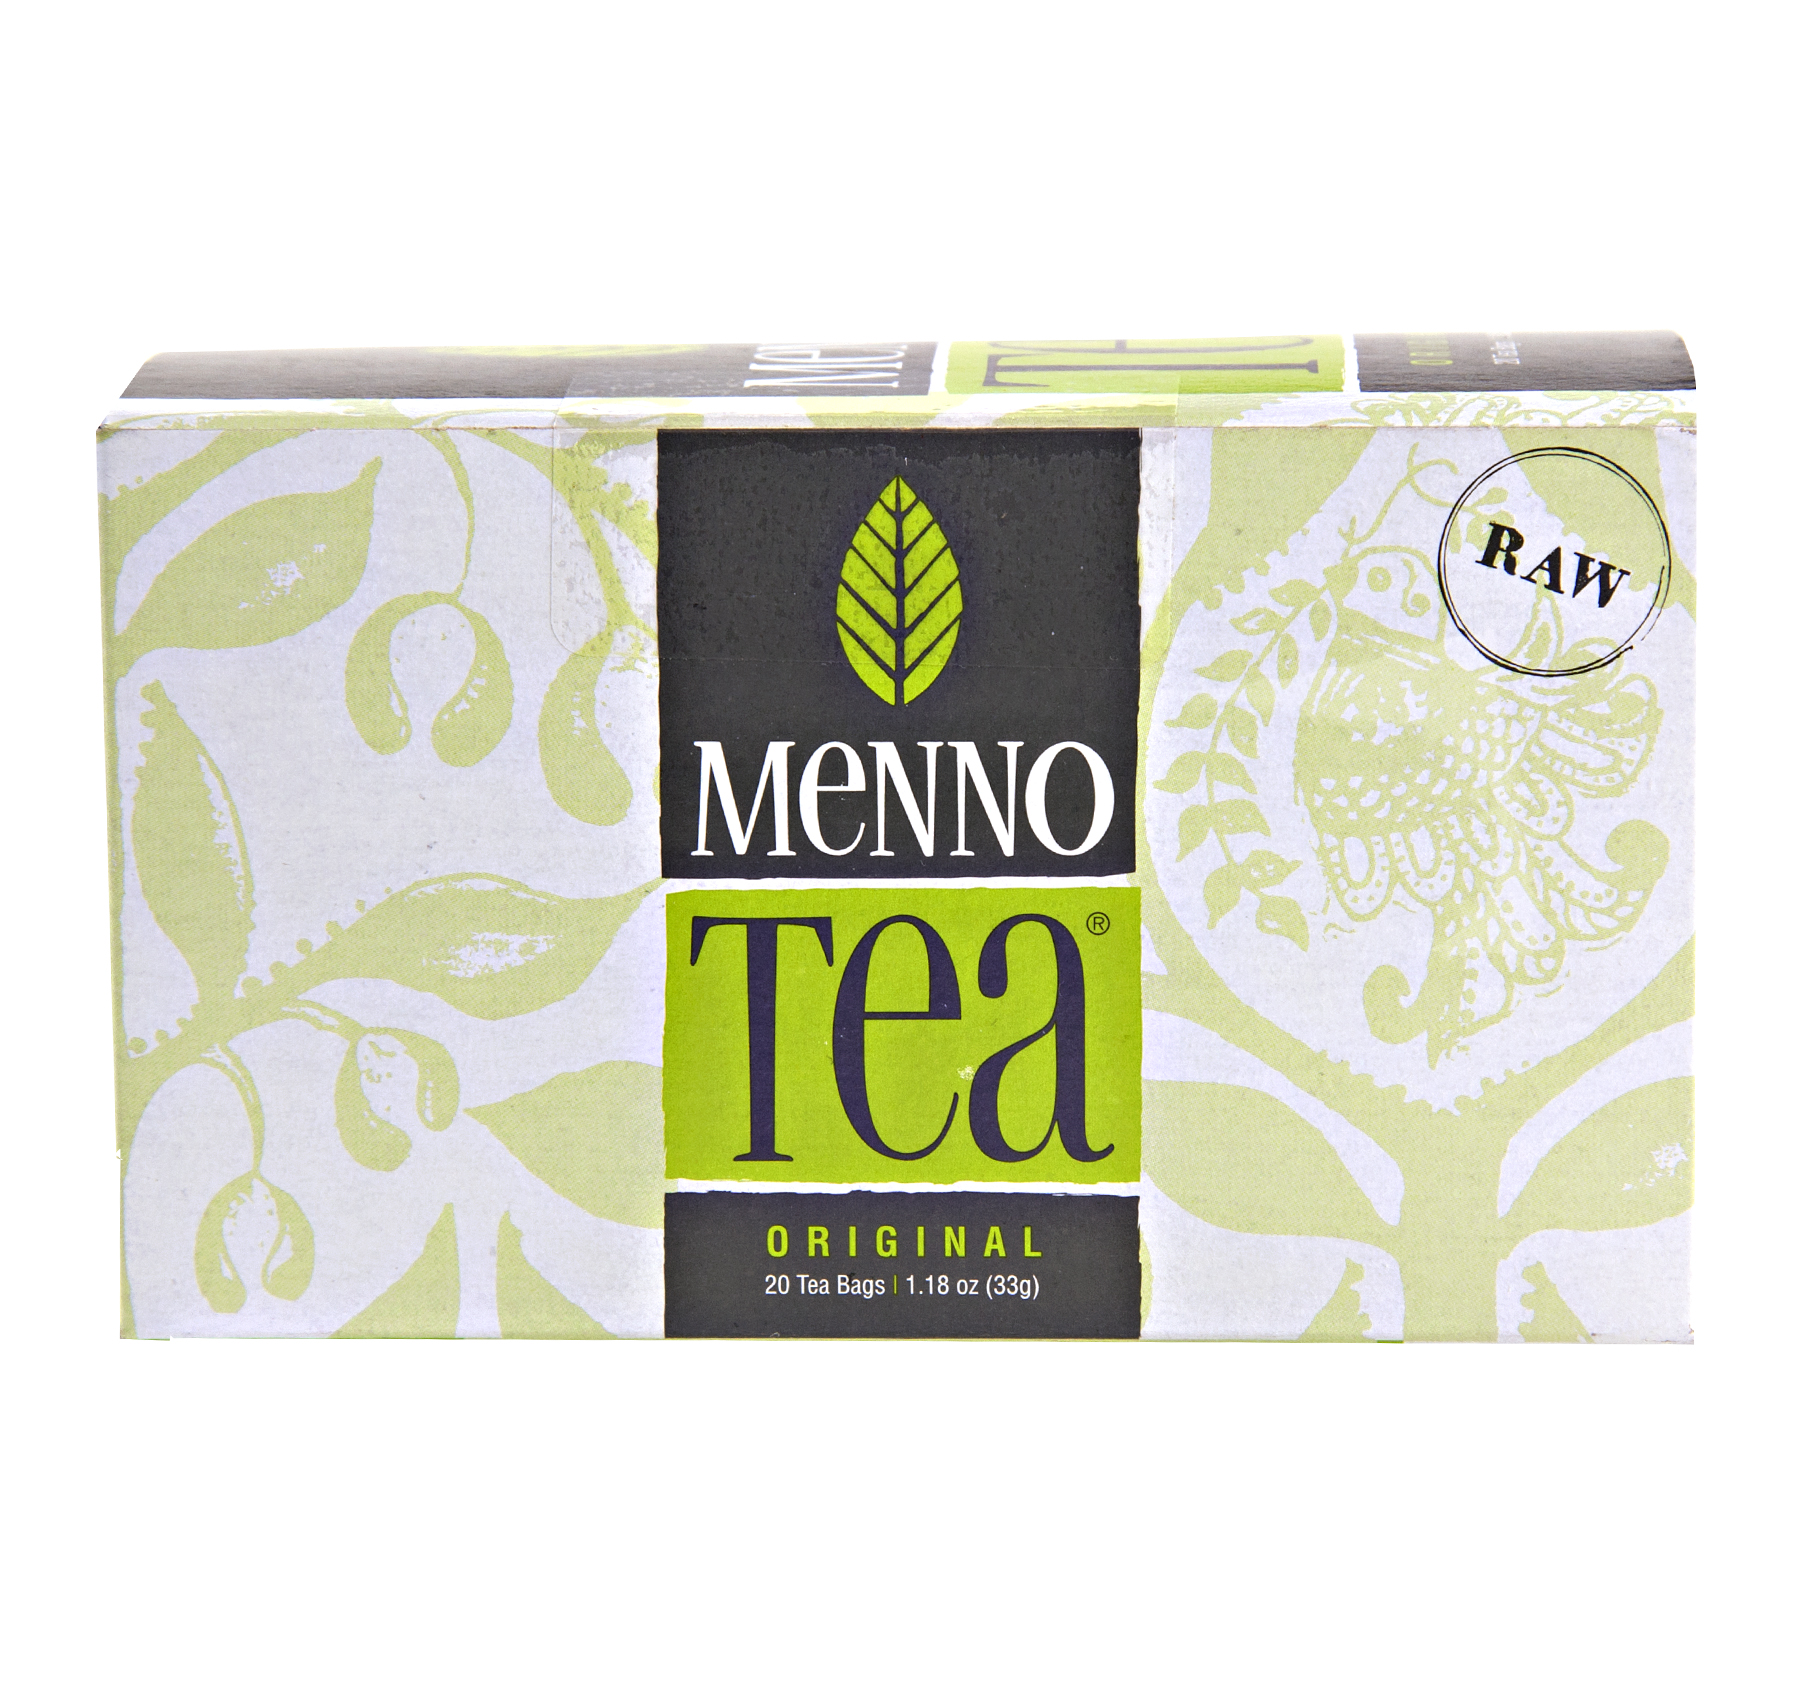 menno-tea-raw-original-white.jpg